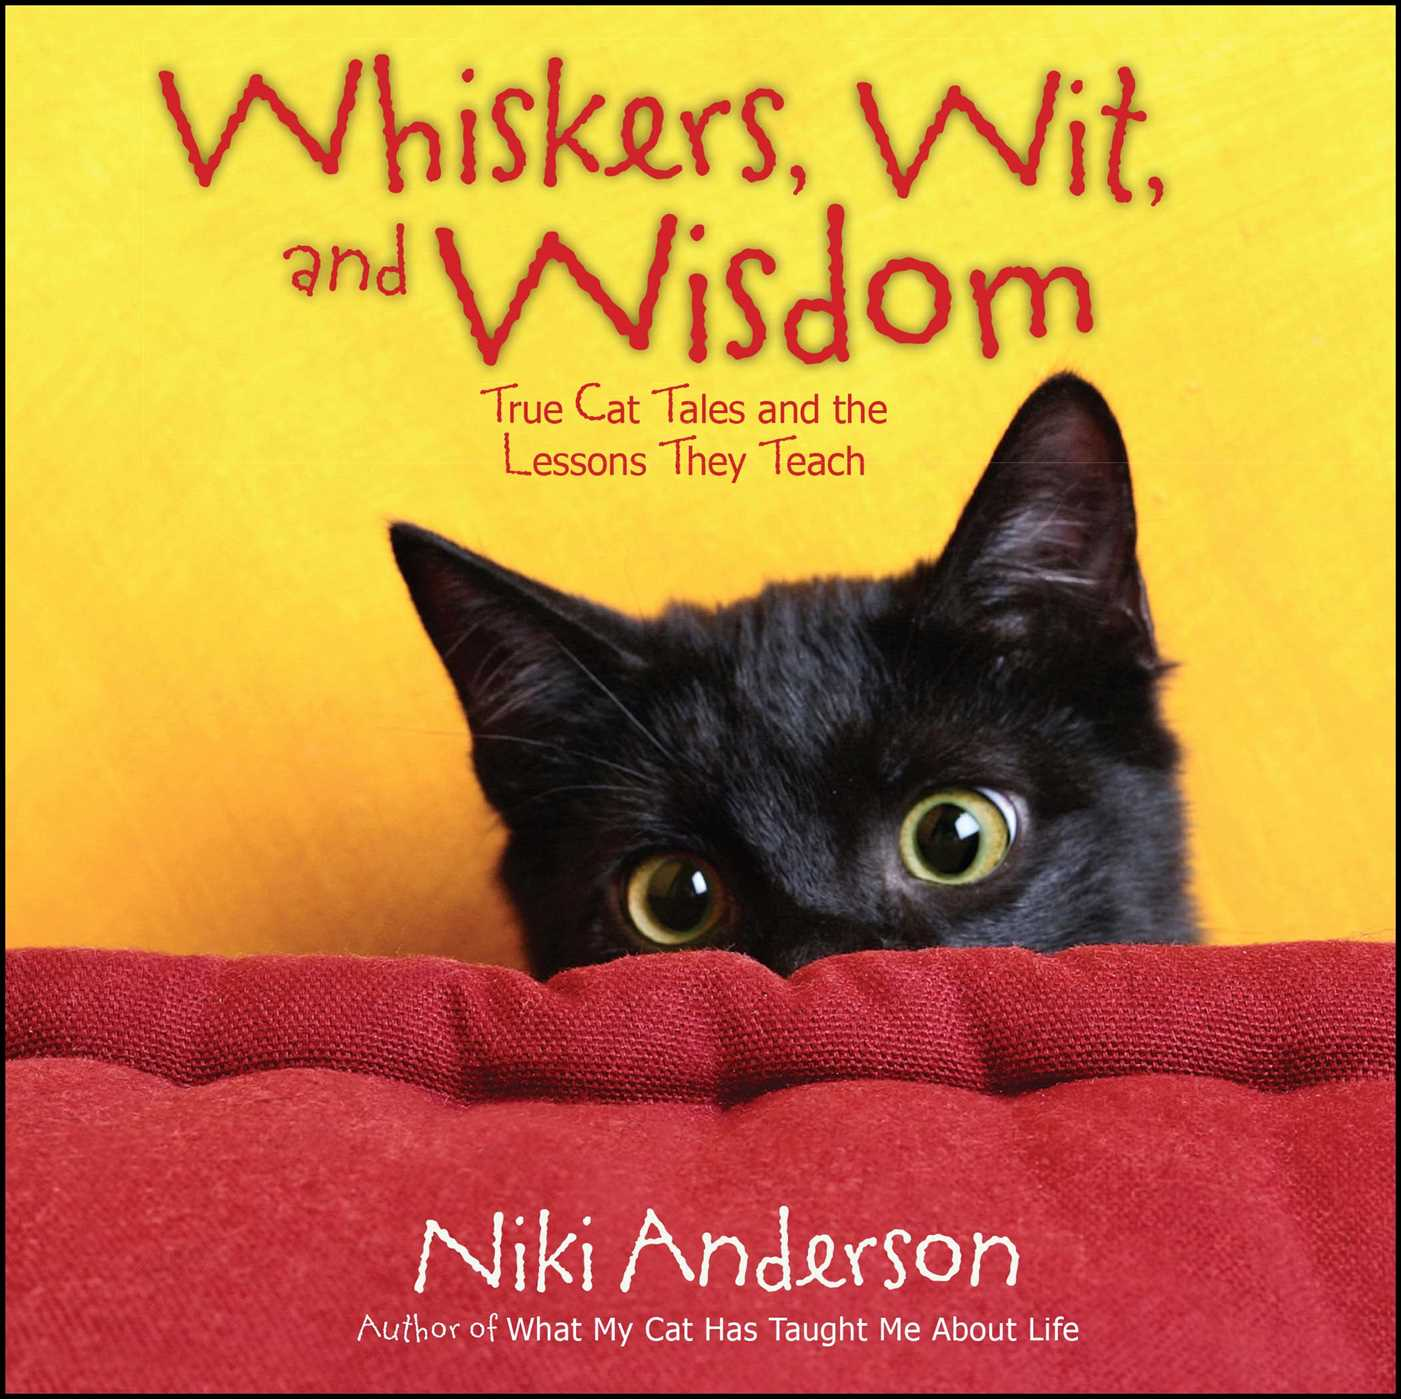 Whiskers wit and wisdom 9781476738147 hr